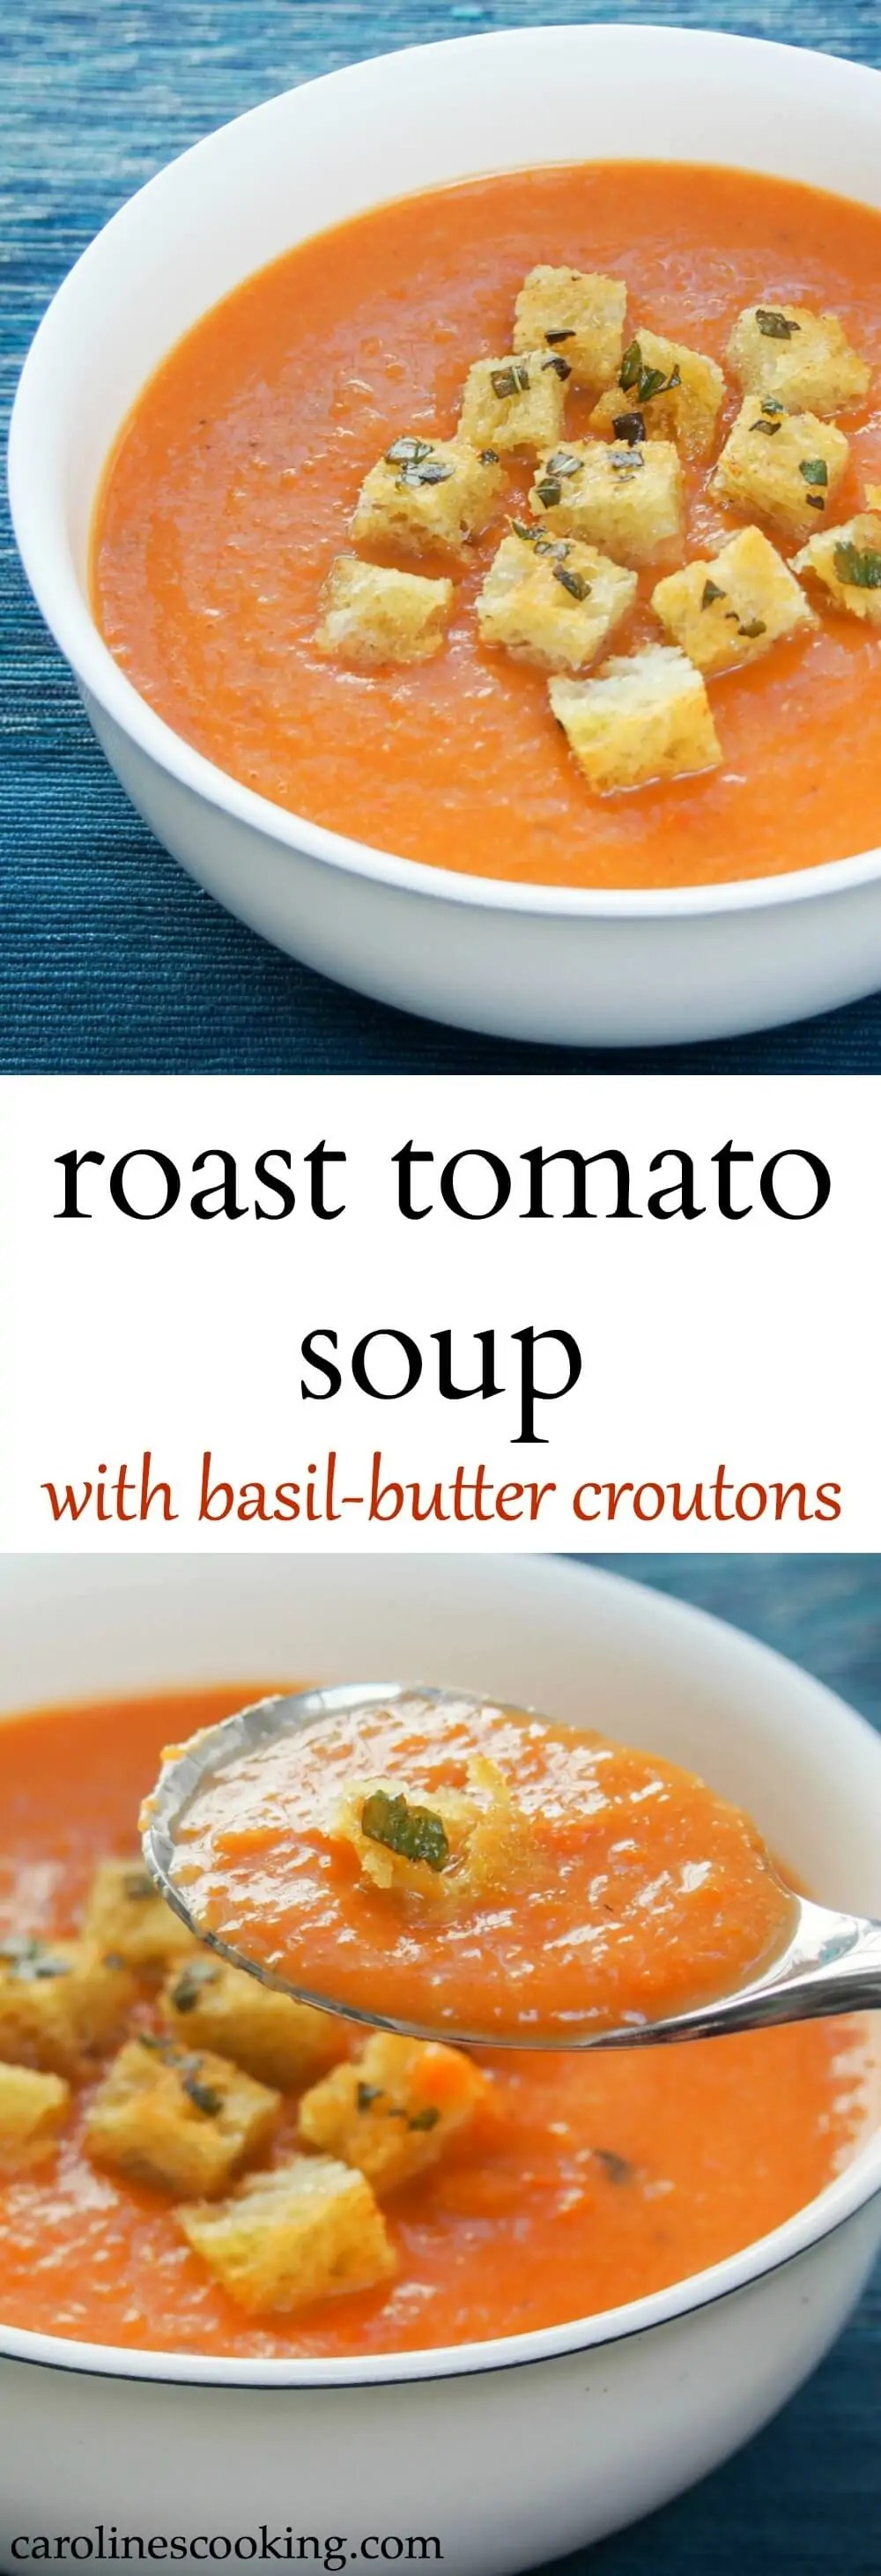 This roast tomato soup is easy to make, freezable and full of delicious flavor. Served with crisp basil-butter croutons, it's a bowl of summer whenever you have it.